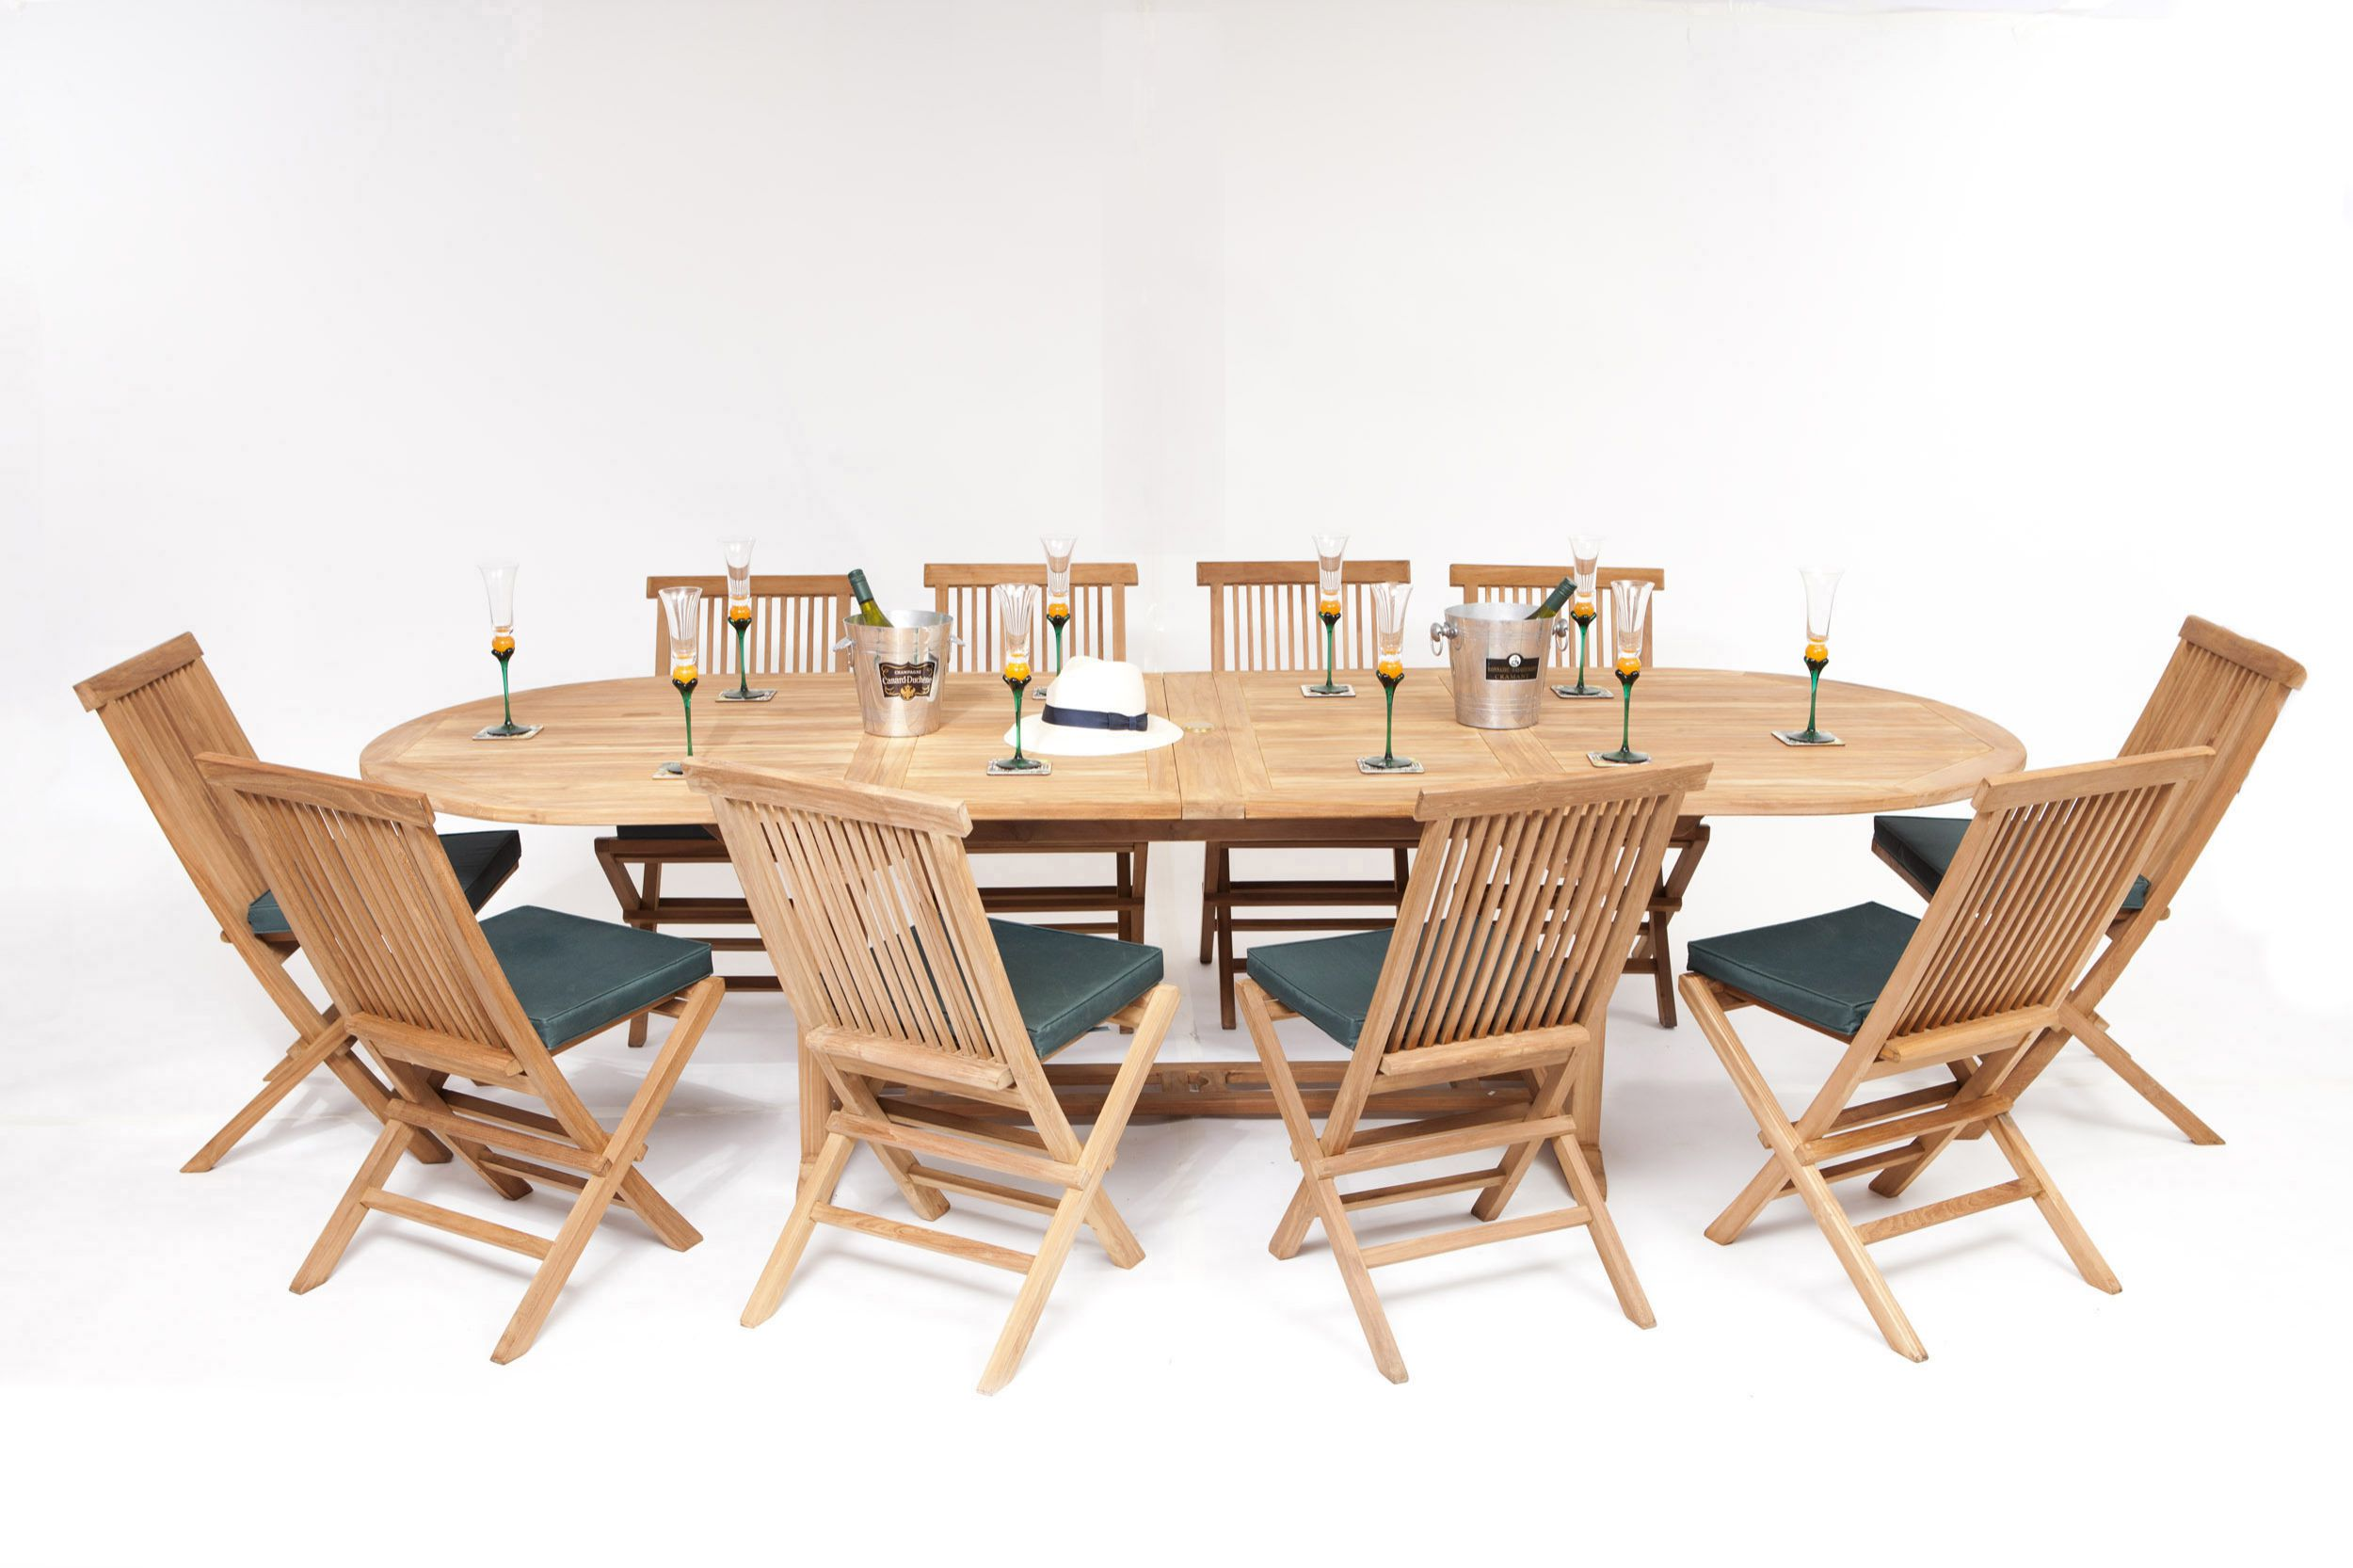 Outdoor Table And Chair Set Monaco Teak Garden 10 Seater Table Chairs Set